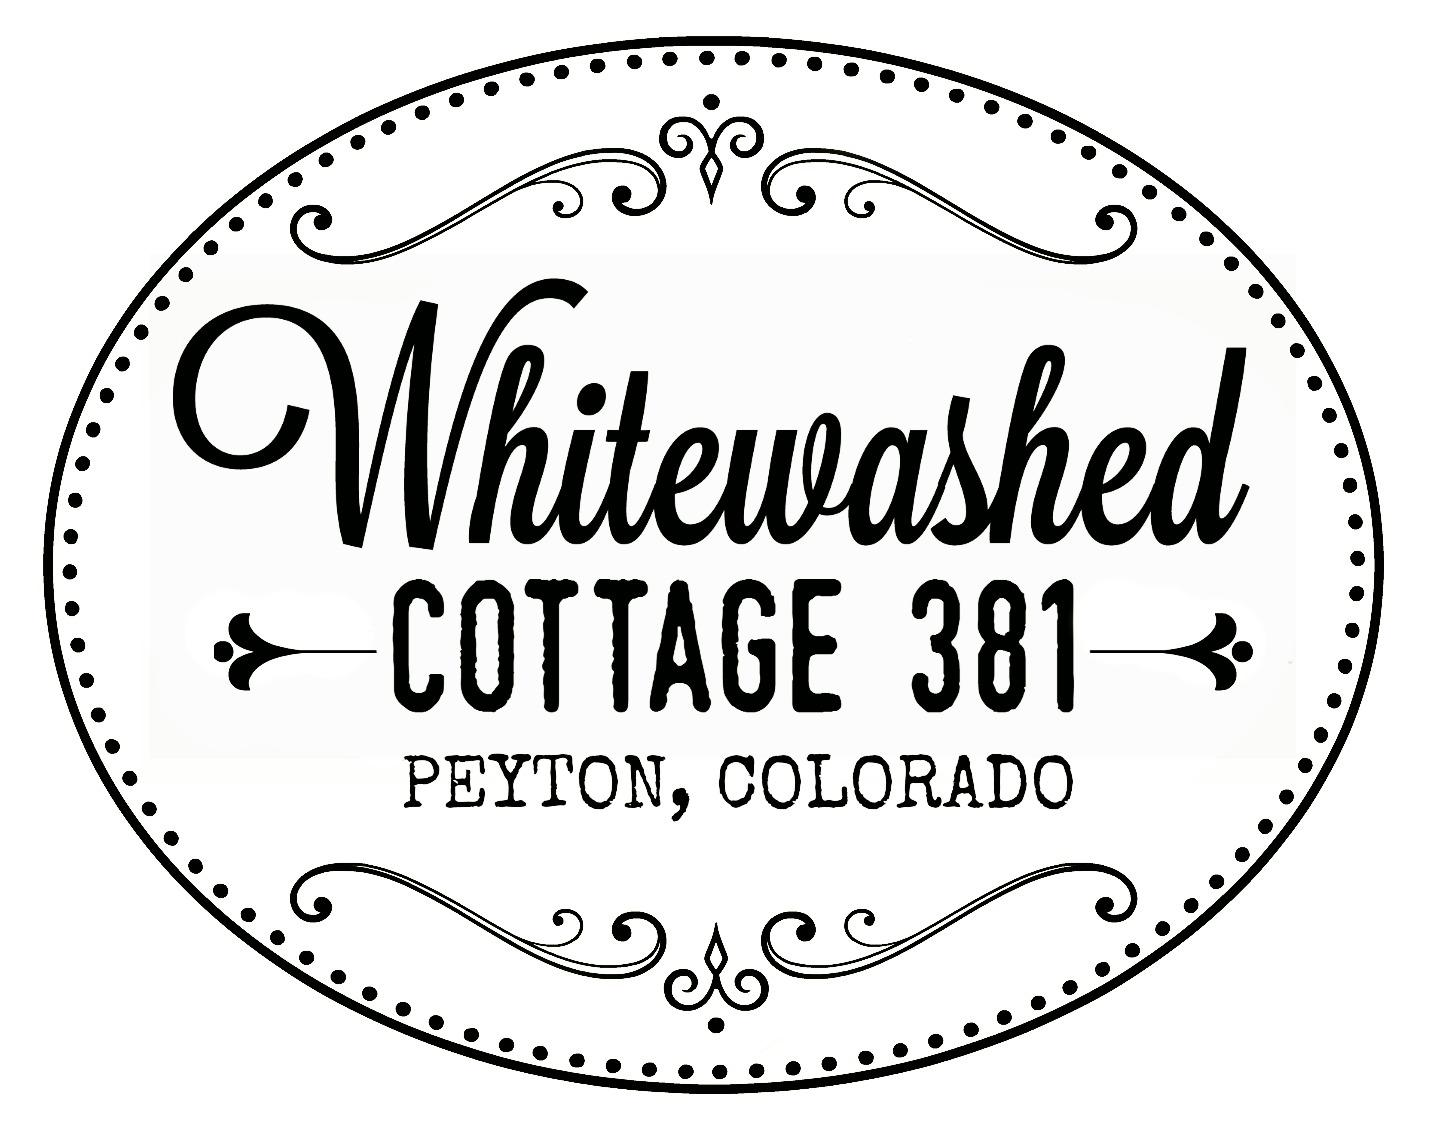 Whitewashed Cottage 381